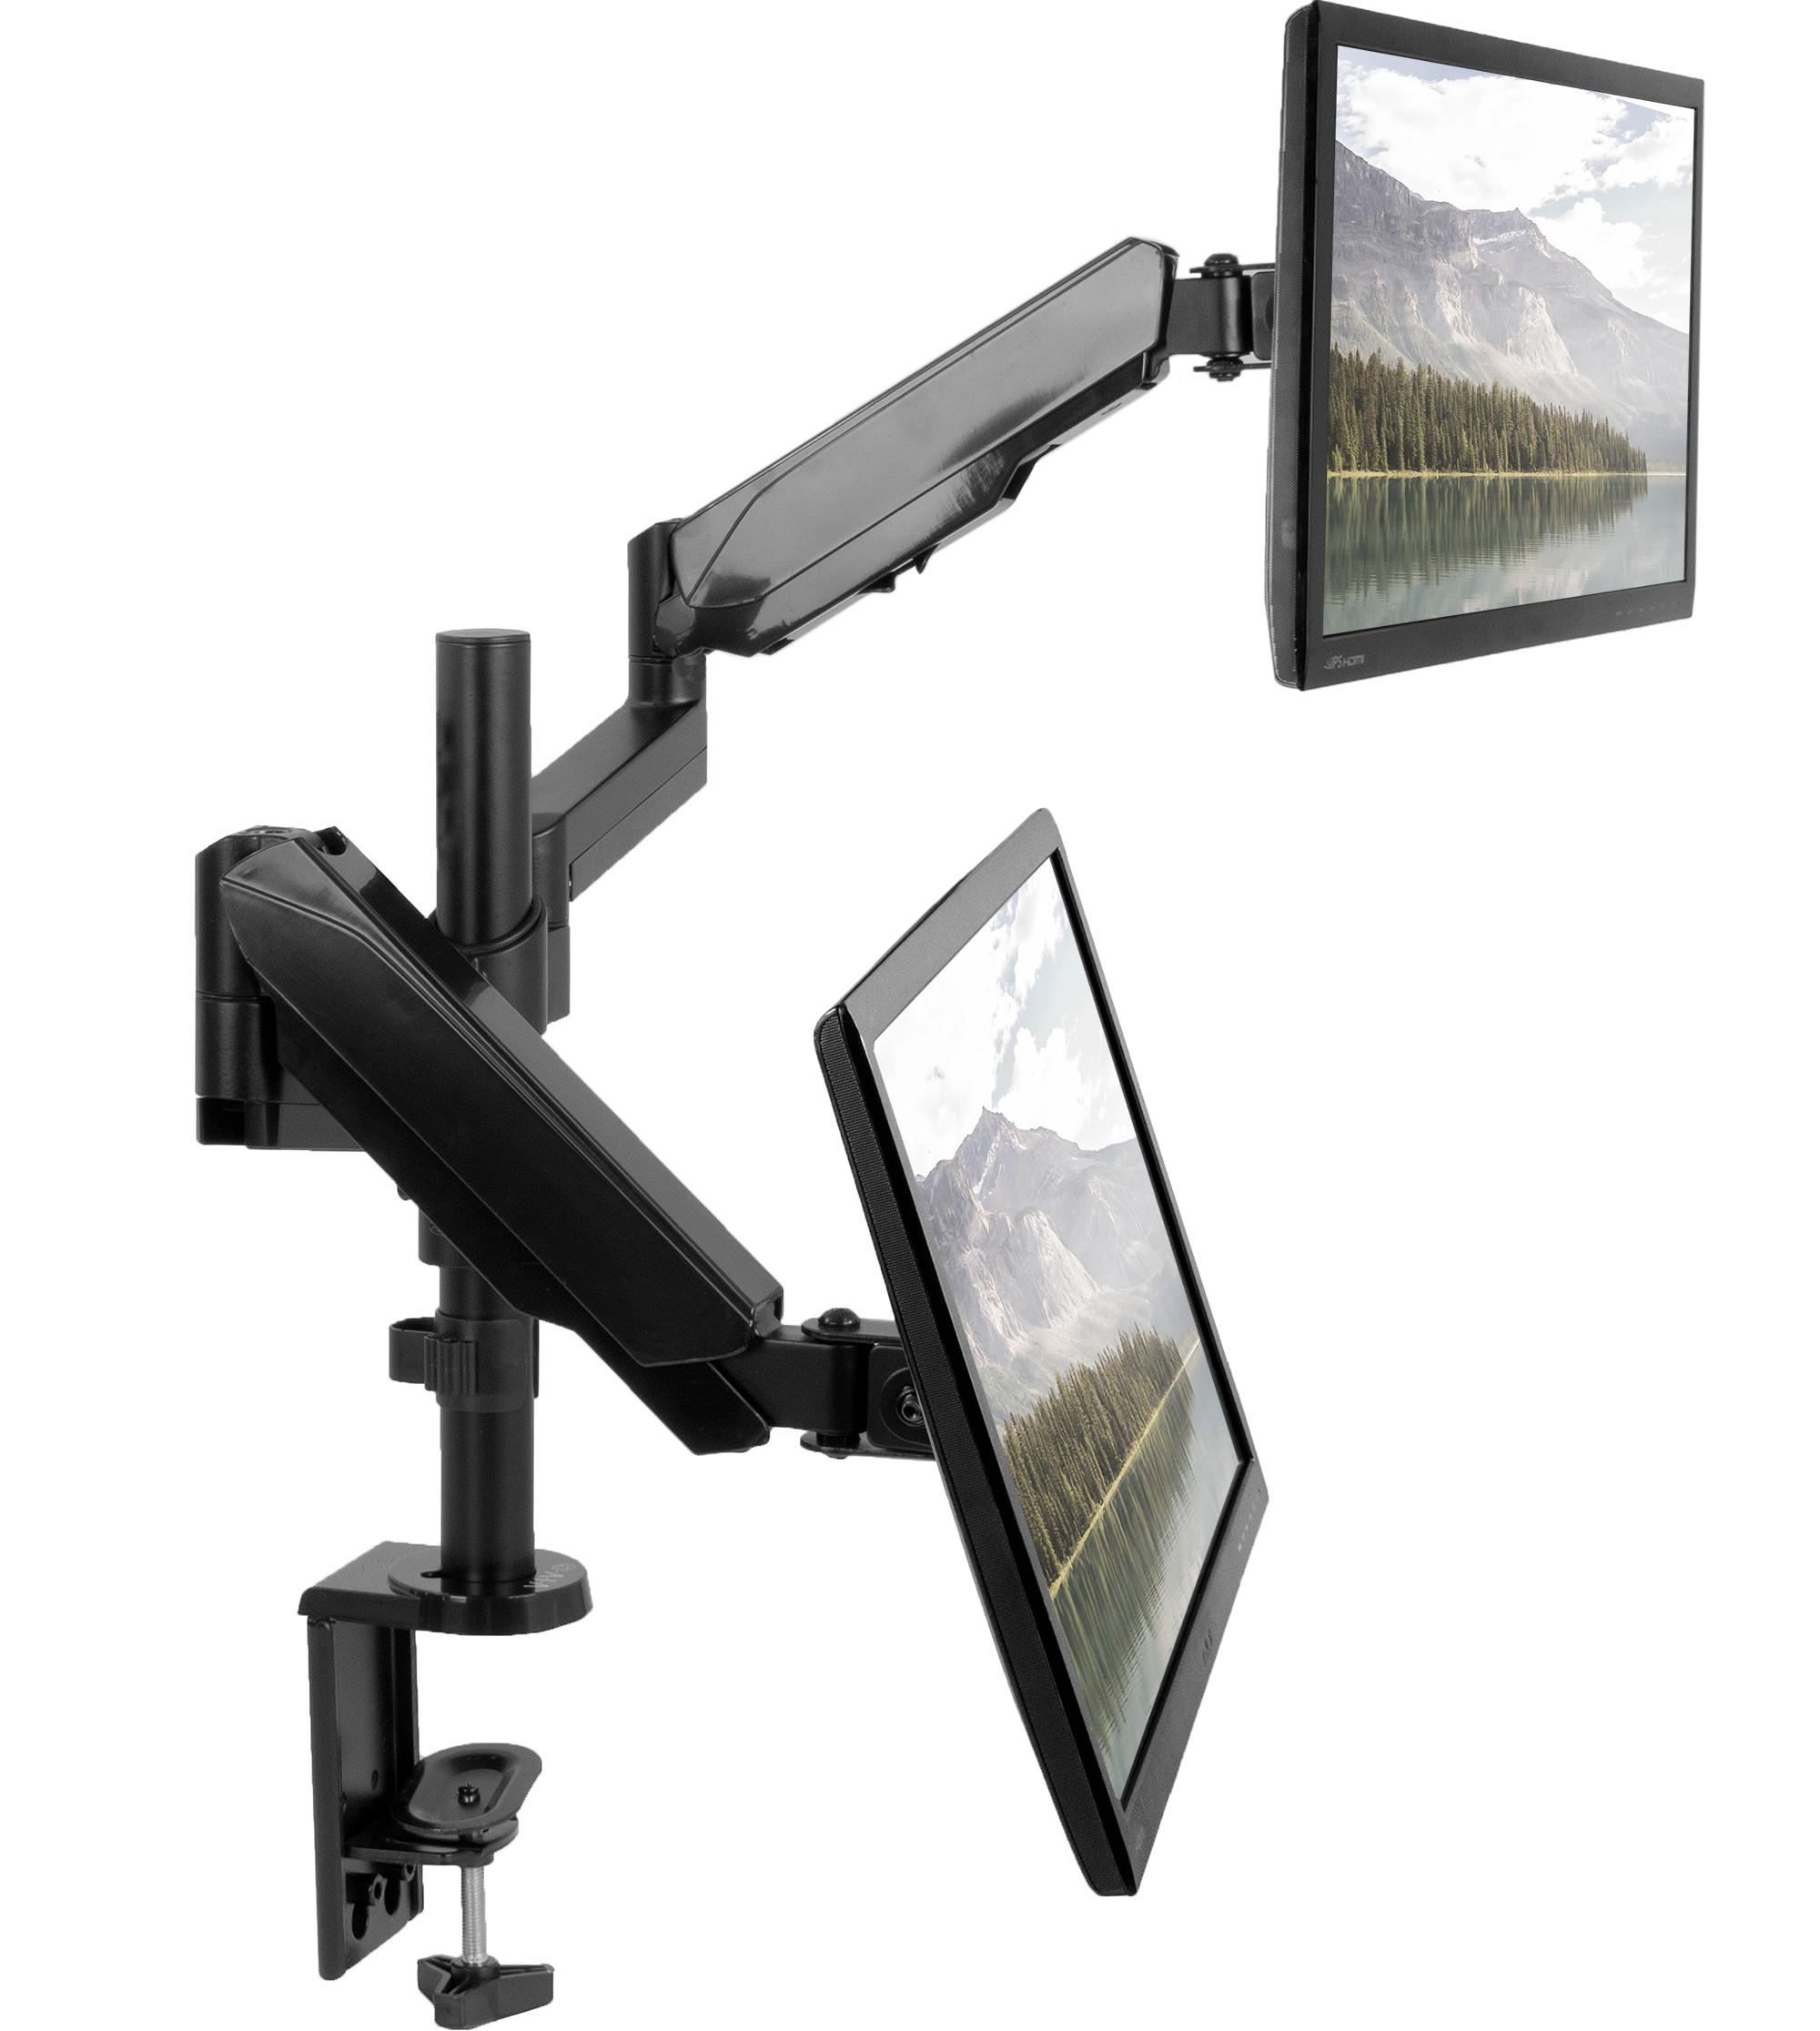 "VIVO Dual Monitor Pneumatic Spring Arm Sit-Stand Desk Mount for 2 Screens up to 32"" each (STAND-V002K)"